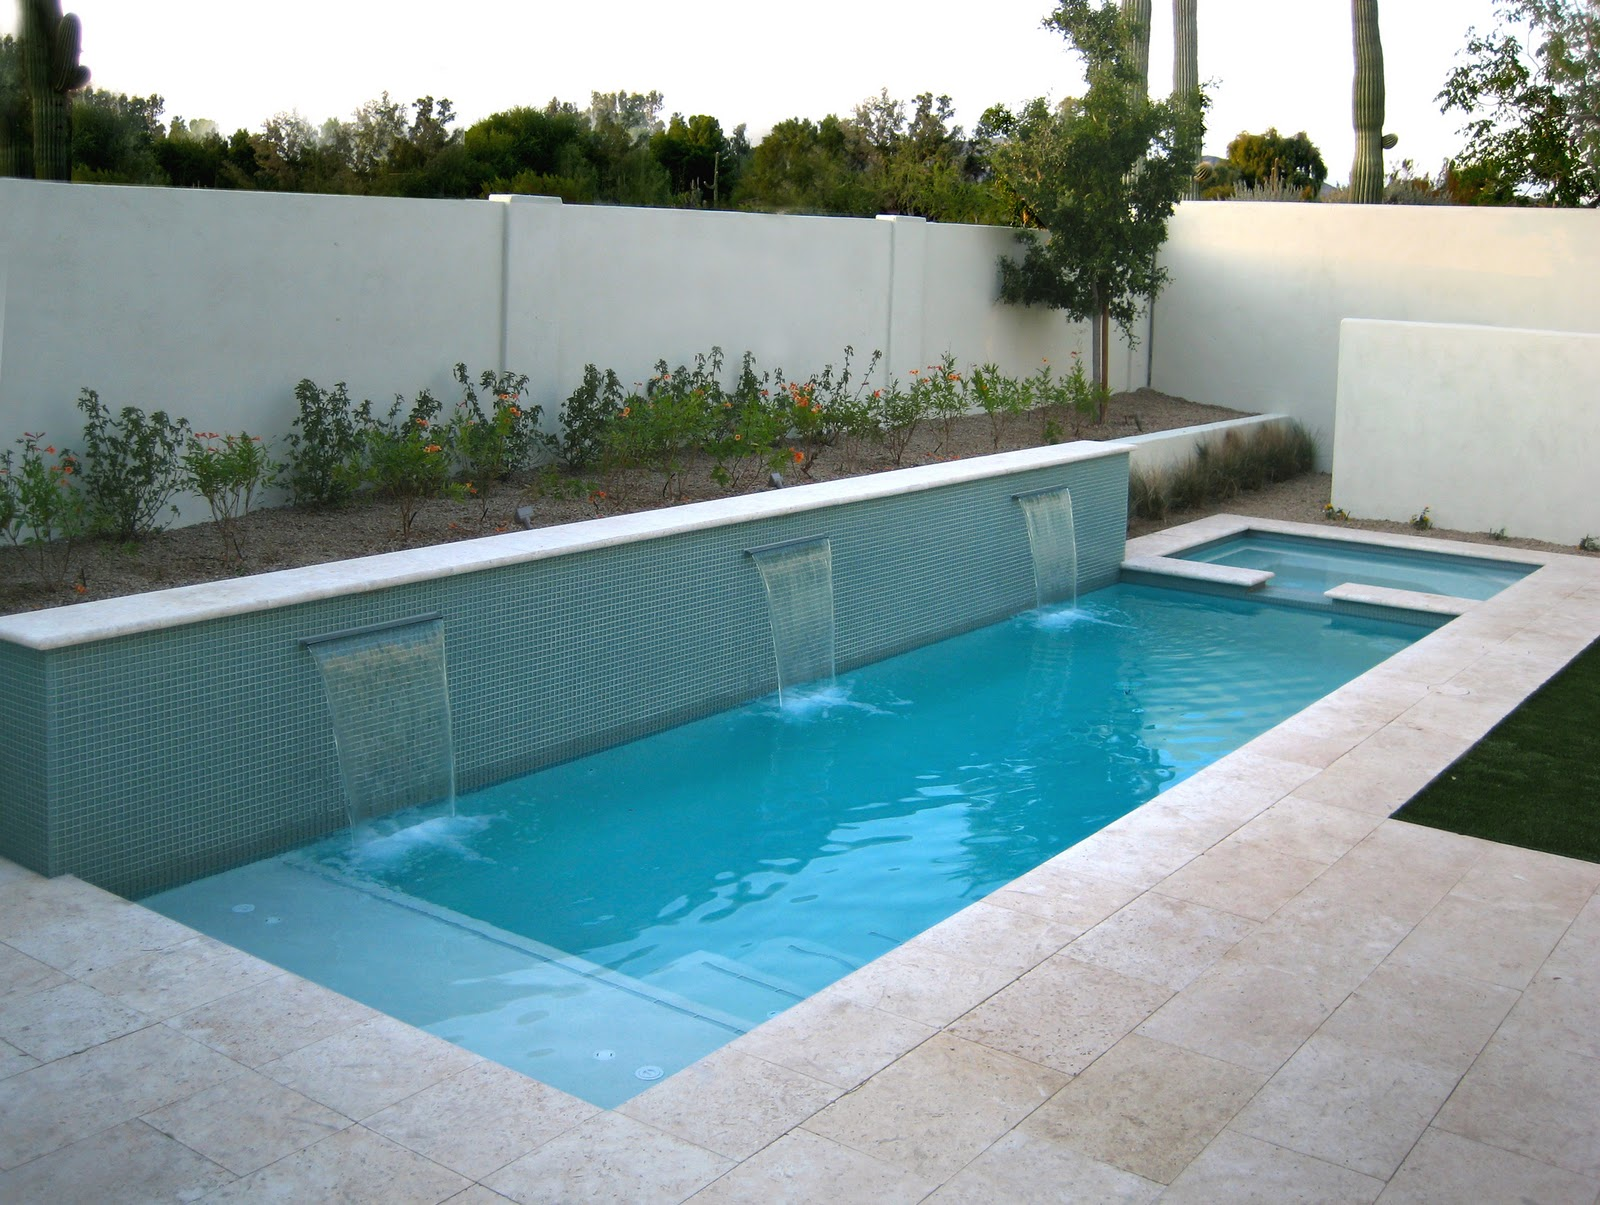 Alpentile glass tile swimming pools water feature or swimming pool no need to choose - Swimming pool tiles designs ...